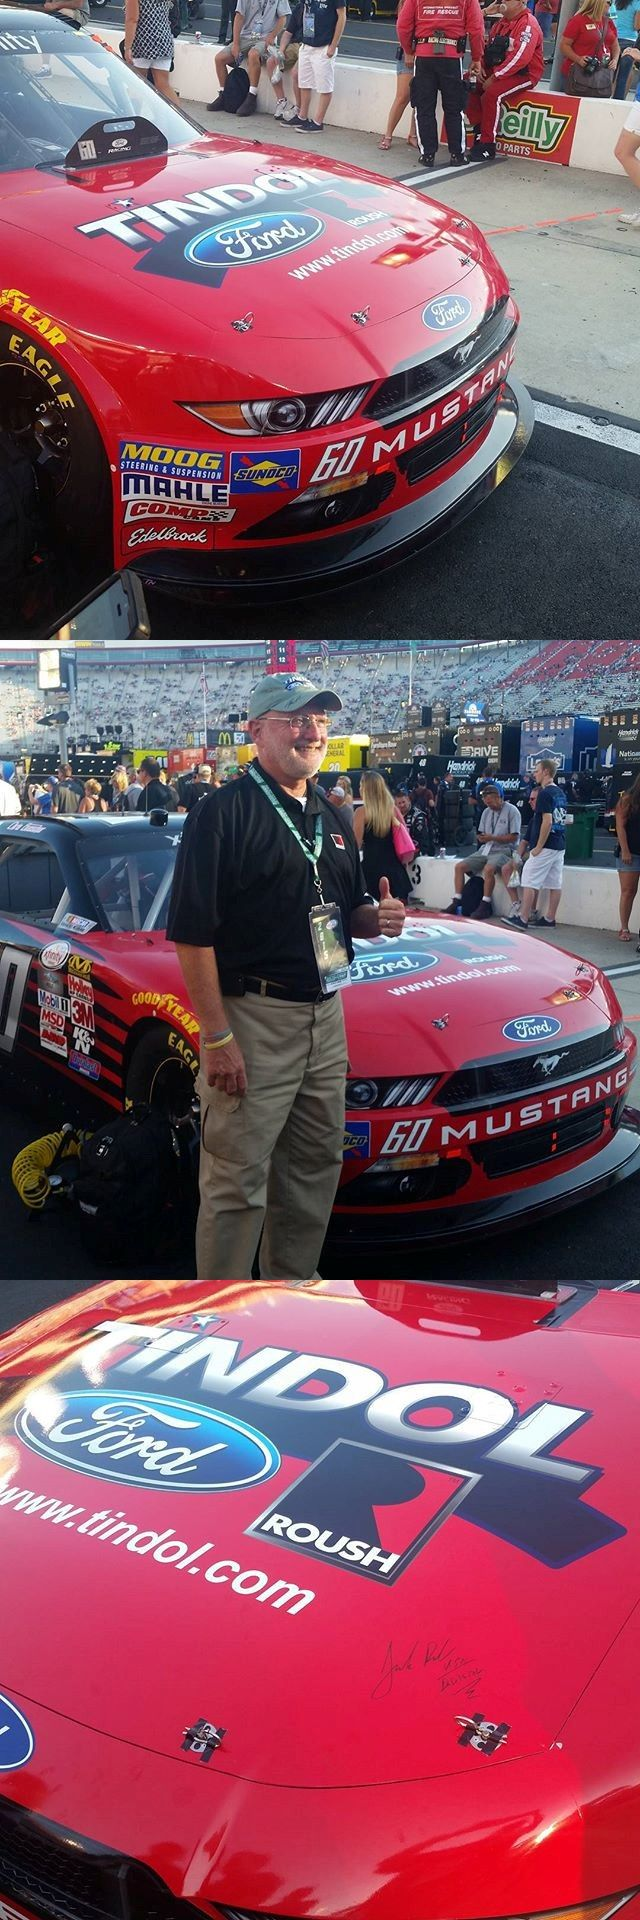 Tindol Ford ROUSH on the hood of Chris Buescher's #60 ROUSH Fenway Racing Mustang at Bristol Motor Speedway Food City 300! #ROUSH #Tindol #Mustang http://tindolford.com/custom/roush-mustang-for-sale